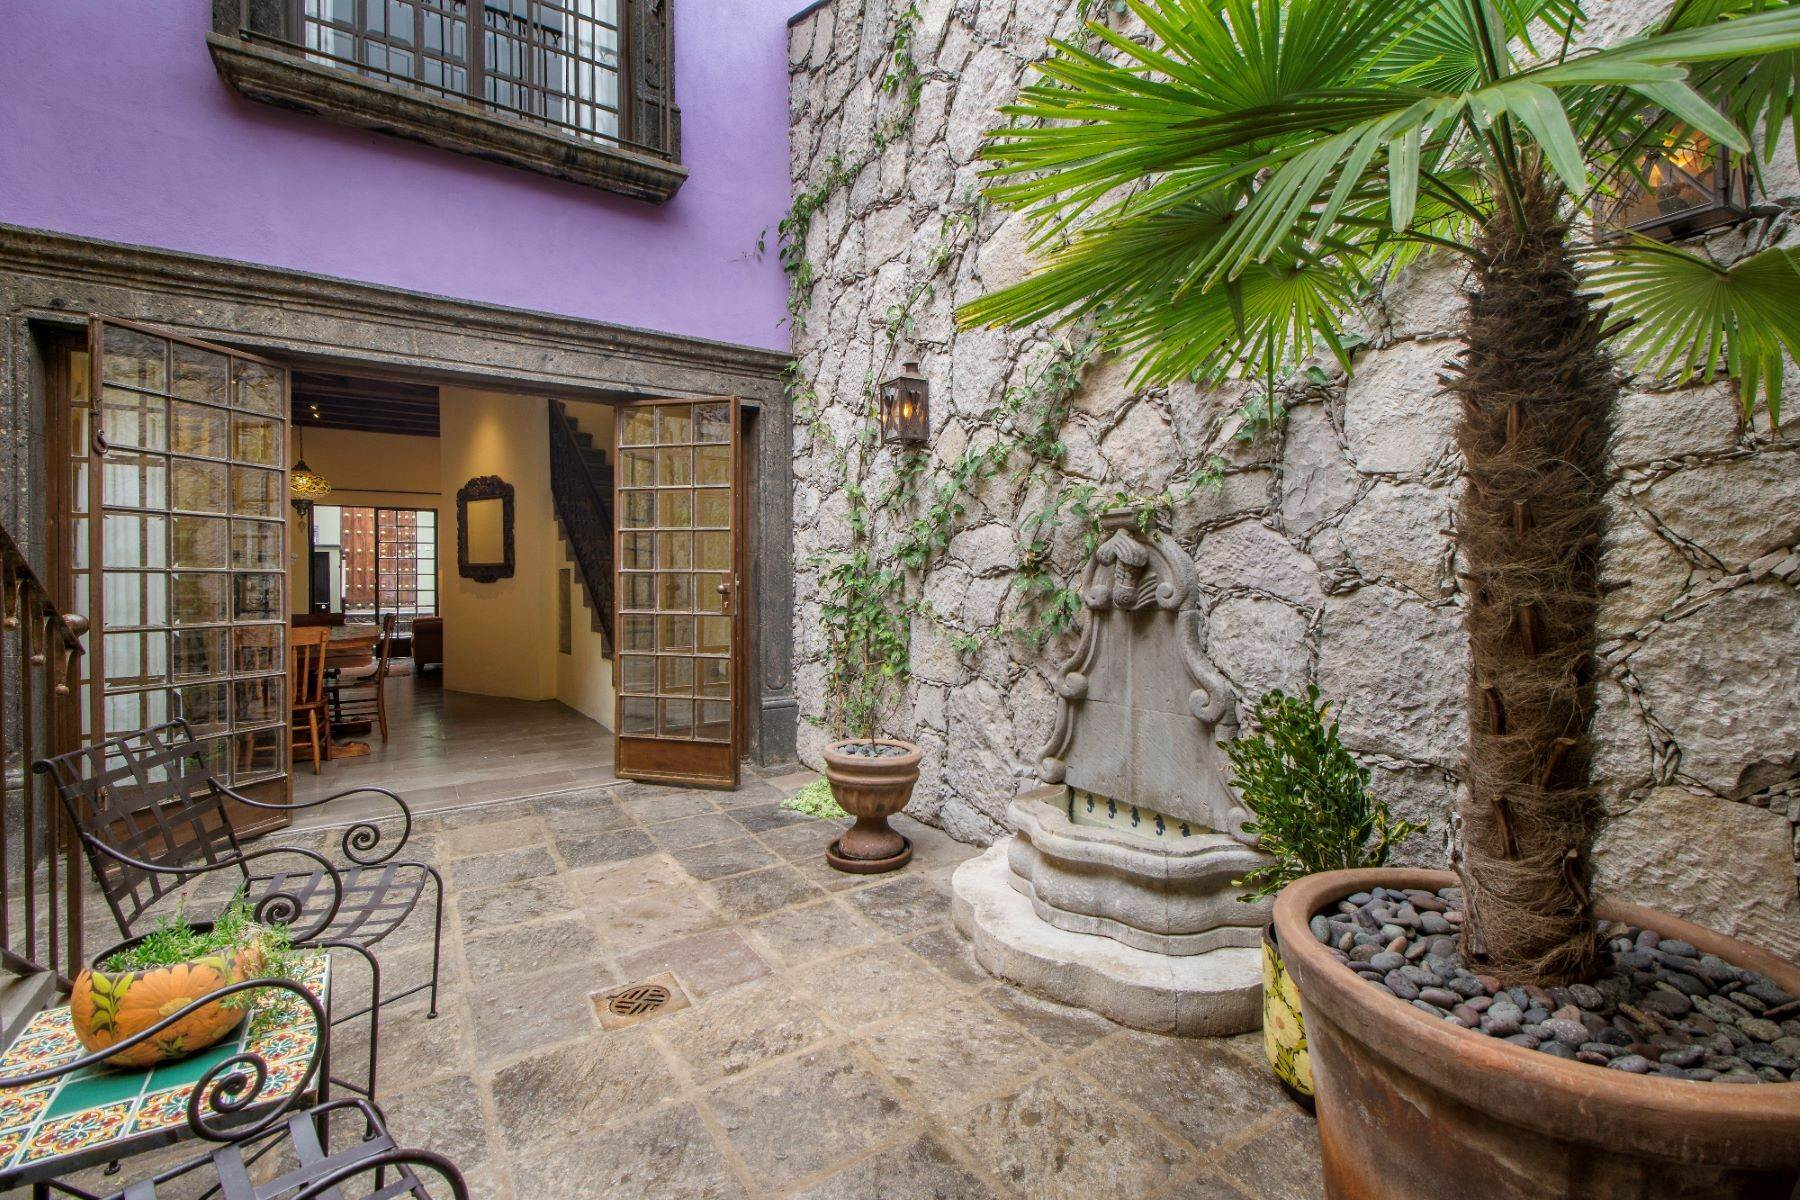 Single Family Homes for Sale at Homobono 16 Homobono, Centro Historico San Miguel De Allende, Guanajuato 37700 Mexico